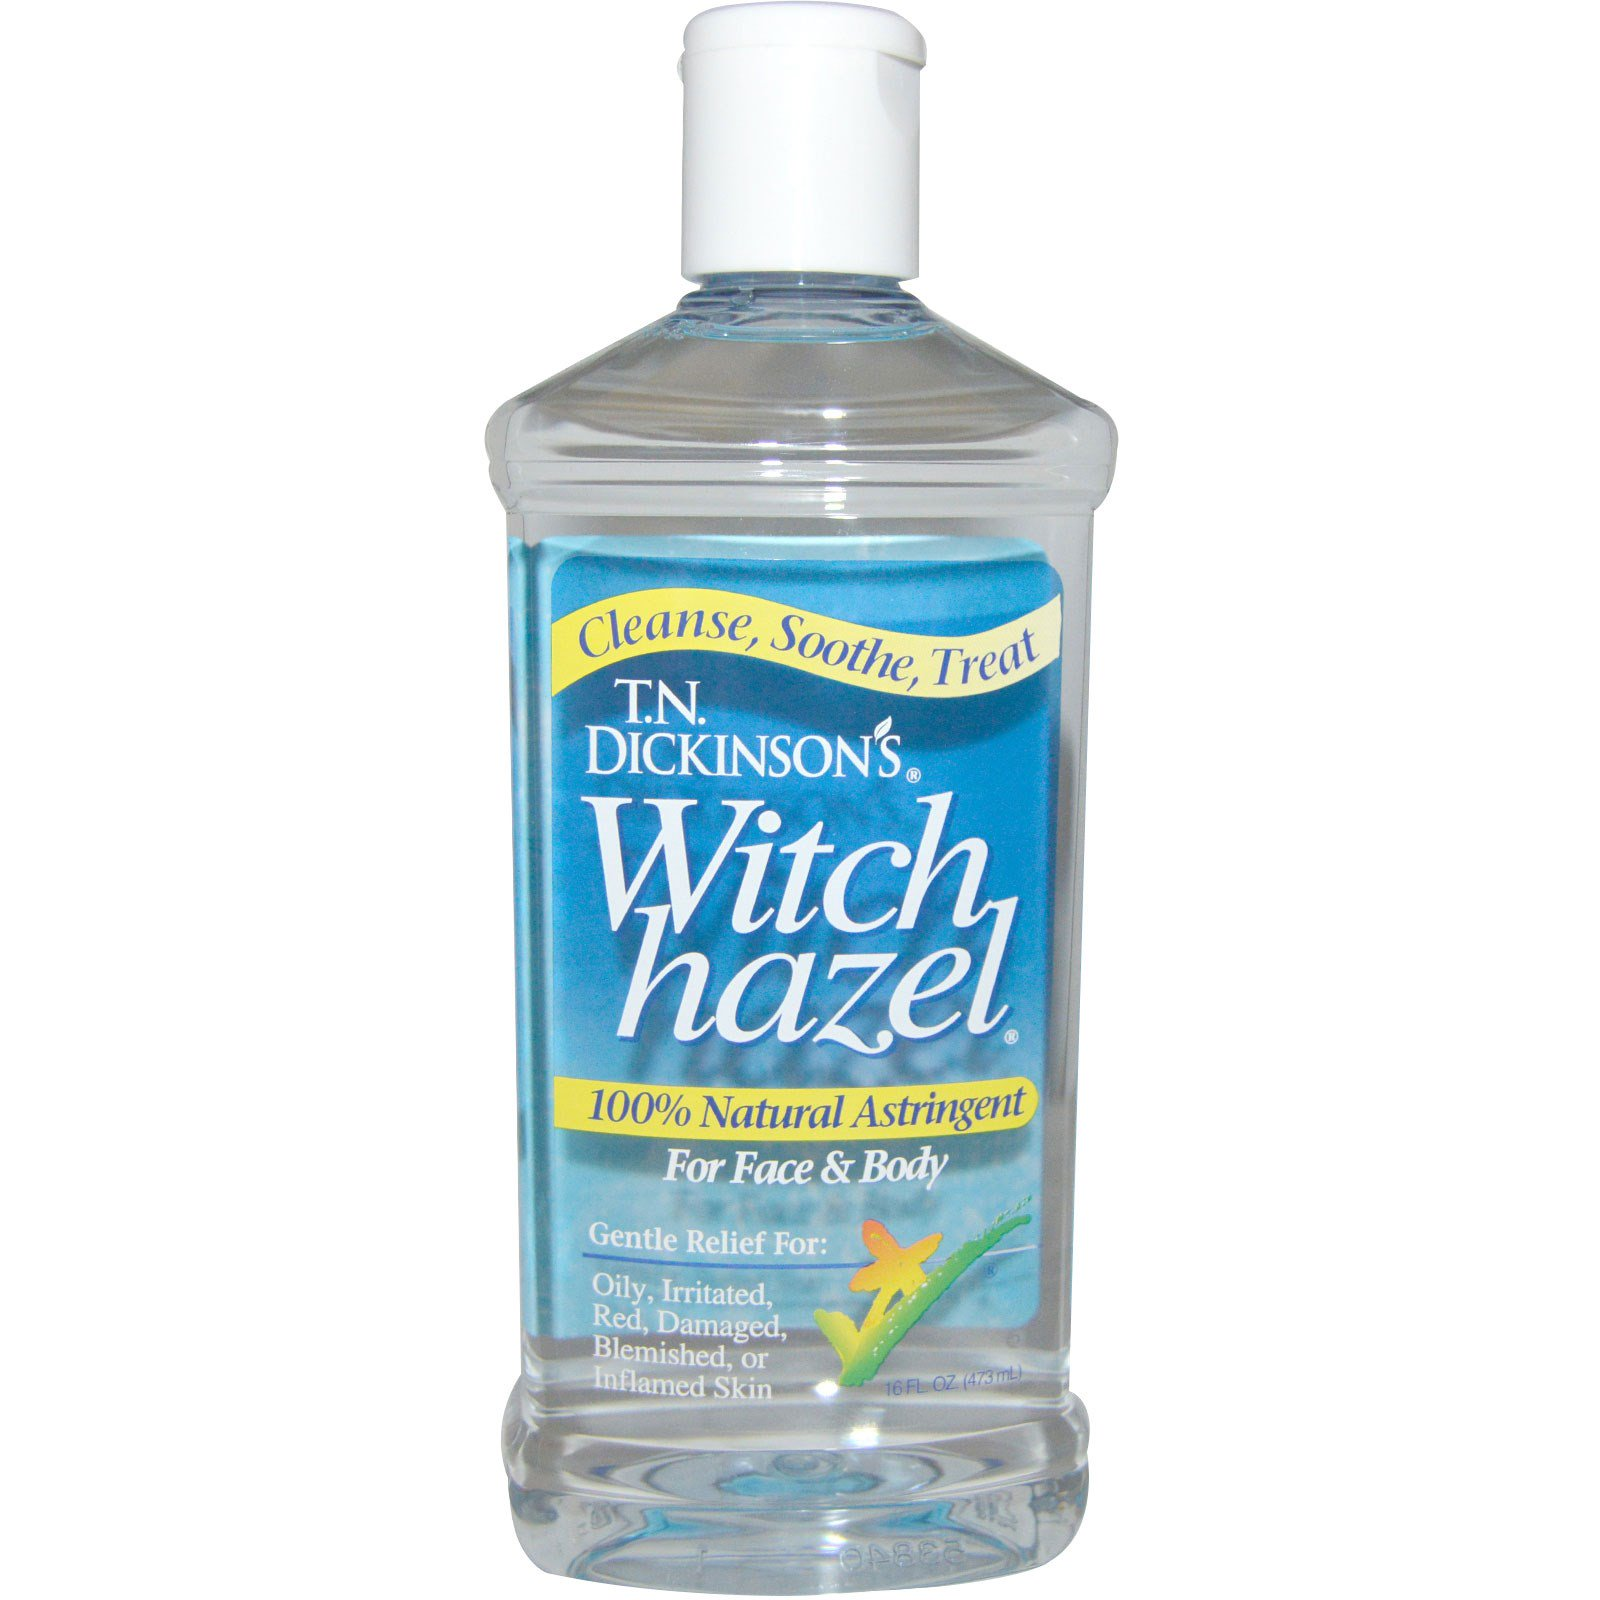 witch hazel for face